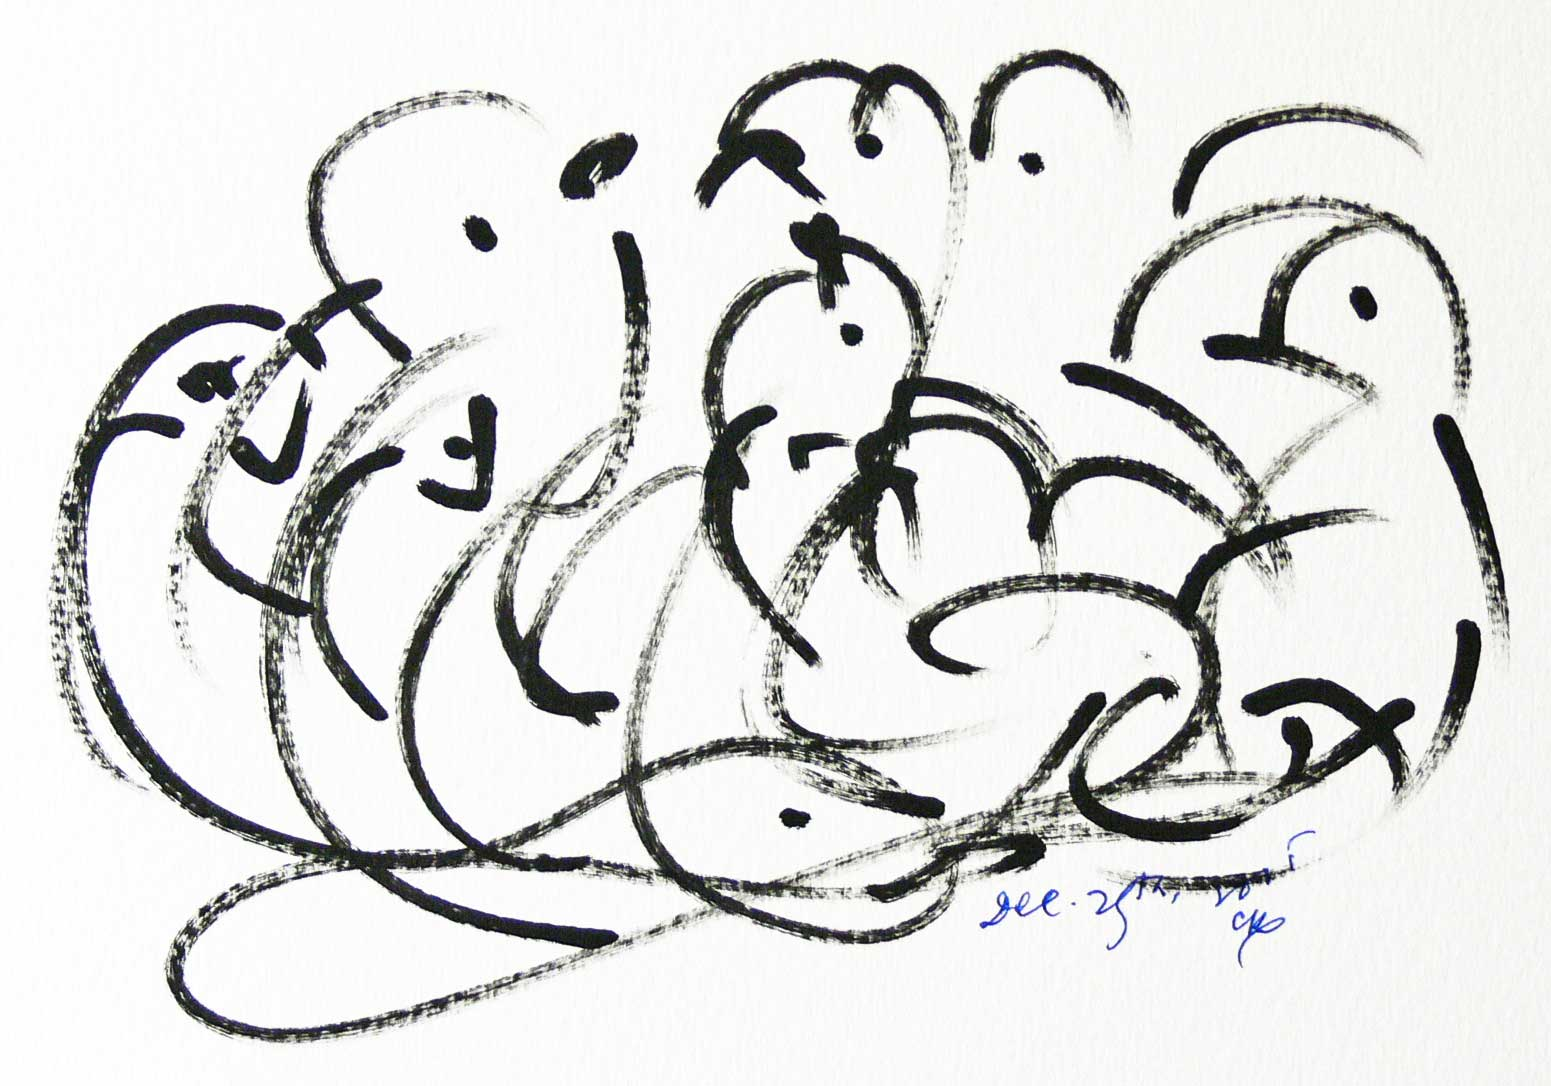 Bird-Drawing-by-Sri-Chinmoy-25-12-2005-3